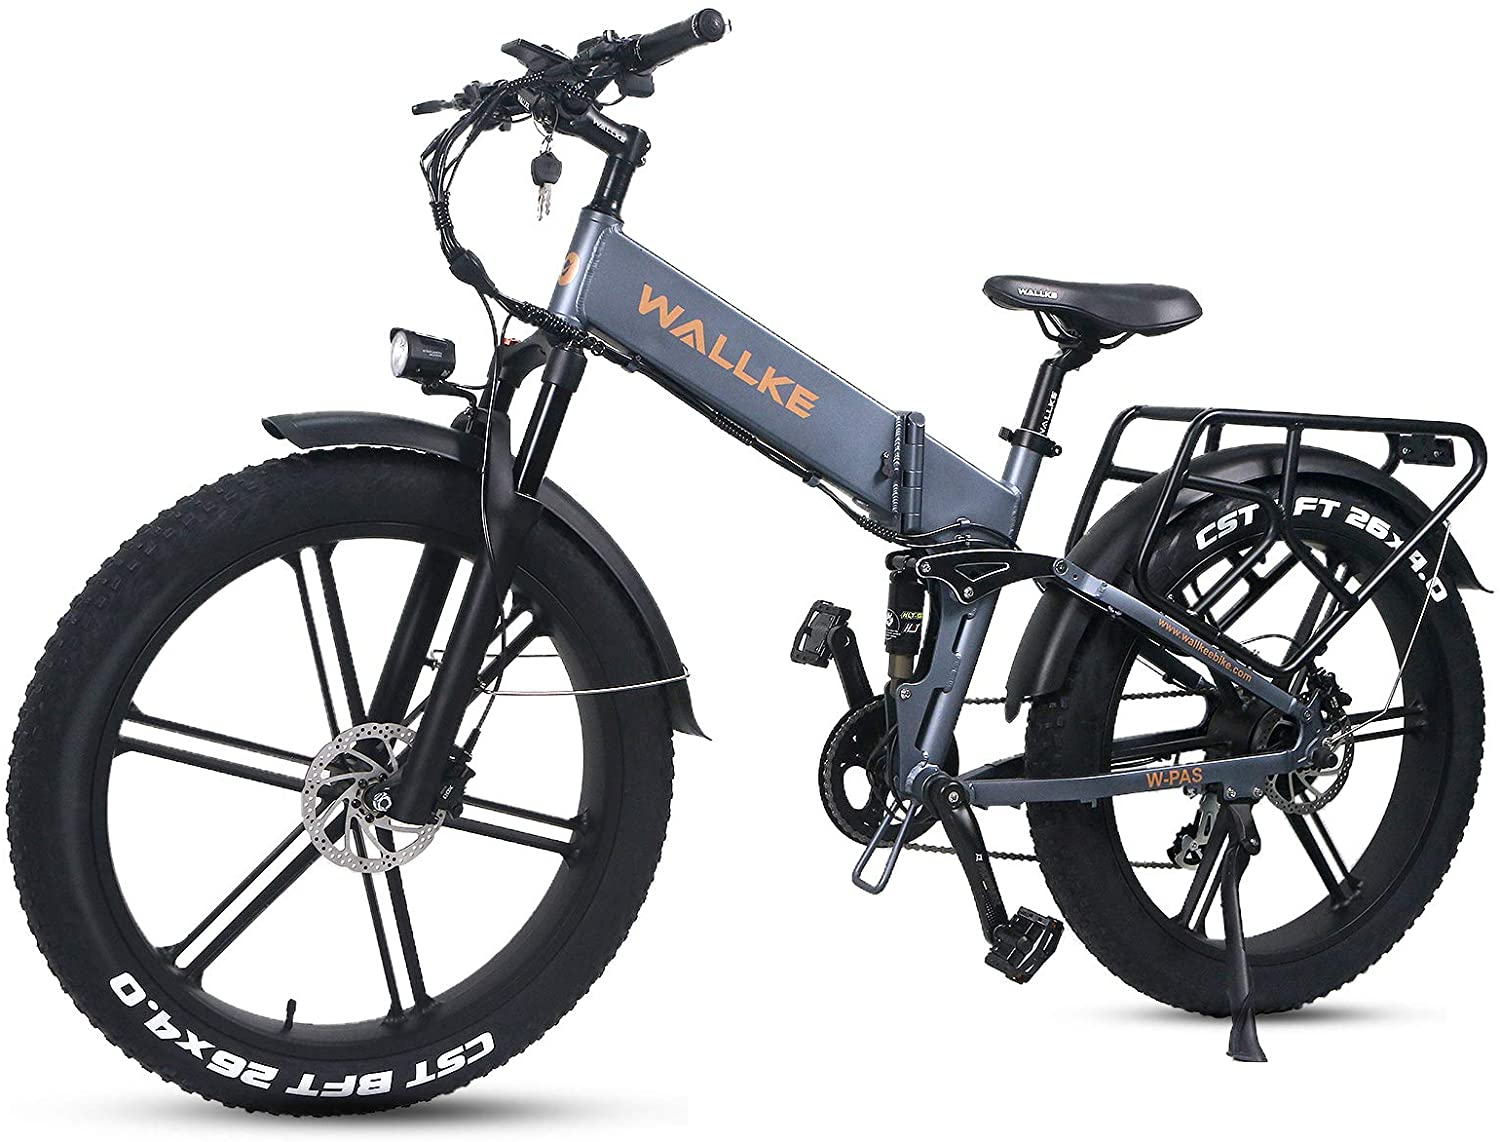 W Wallke X2 Pro Folding Electric Mountain Bike 26 Inch Fat Tire Ebike 750W Motor, 48V 11.6AH Samsung Removable Lithium Battery Bicycle, Seamless Welding Aluminum Alloy Frame